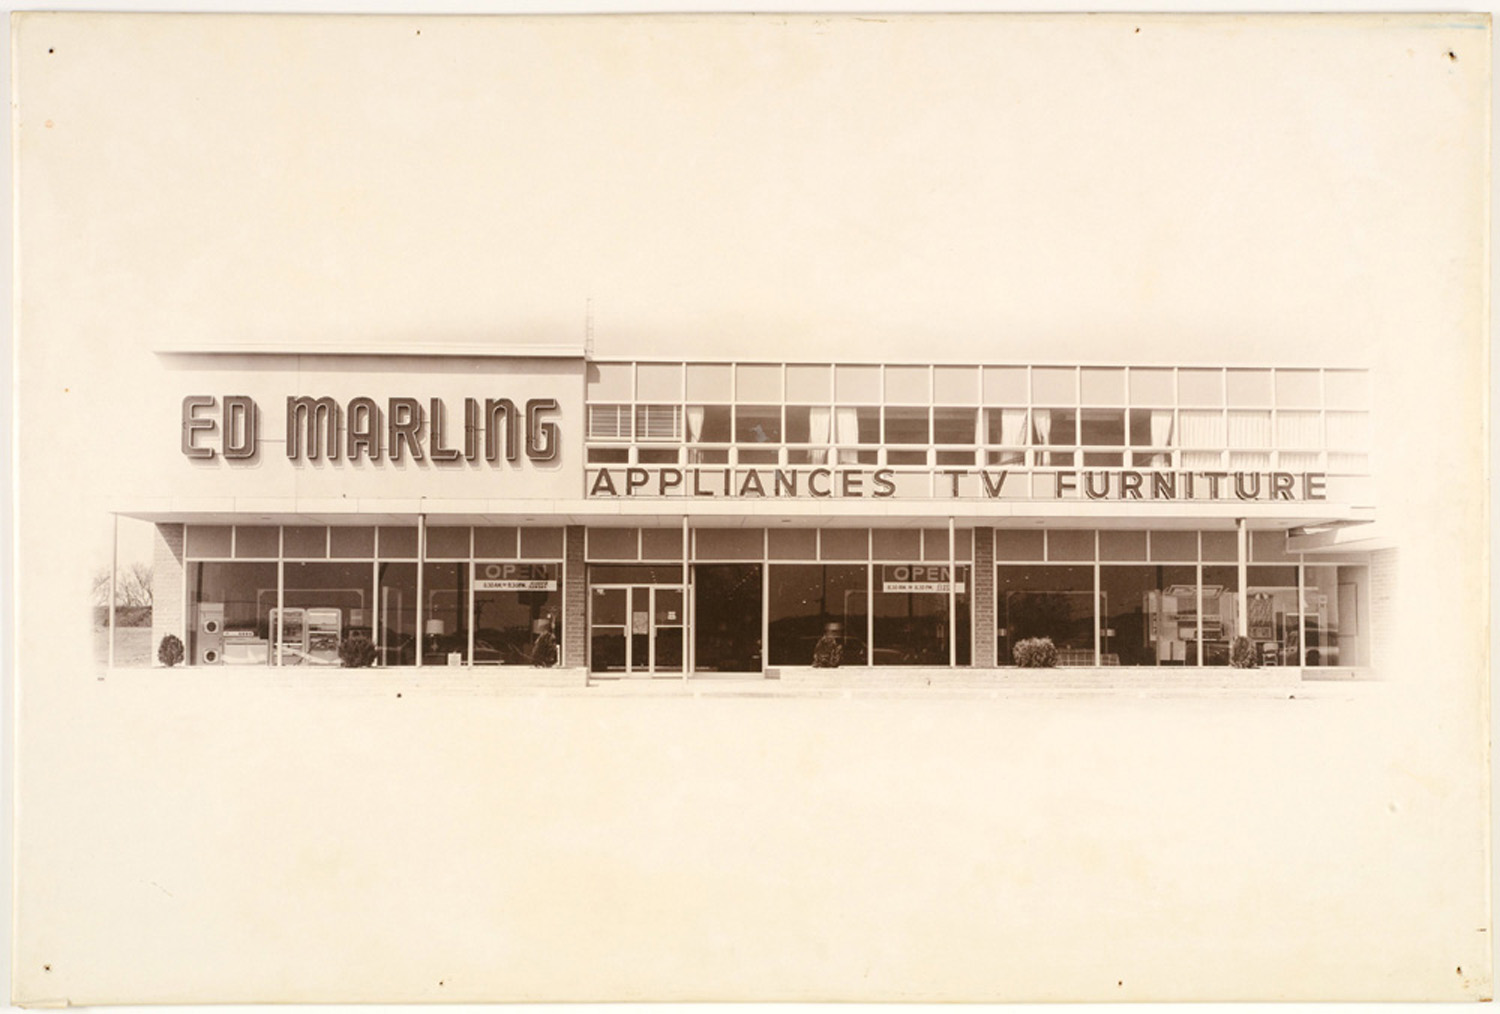 Ed Marling Furniture And Appliances Store In Topeka